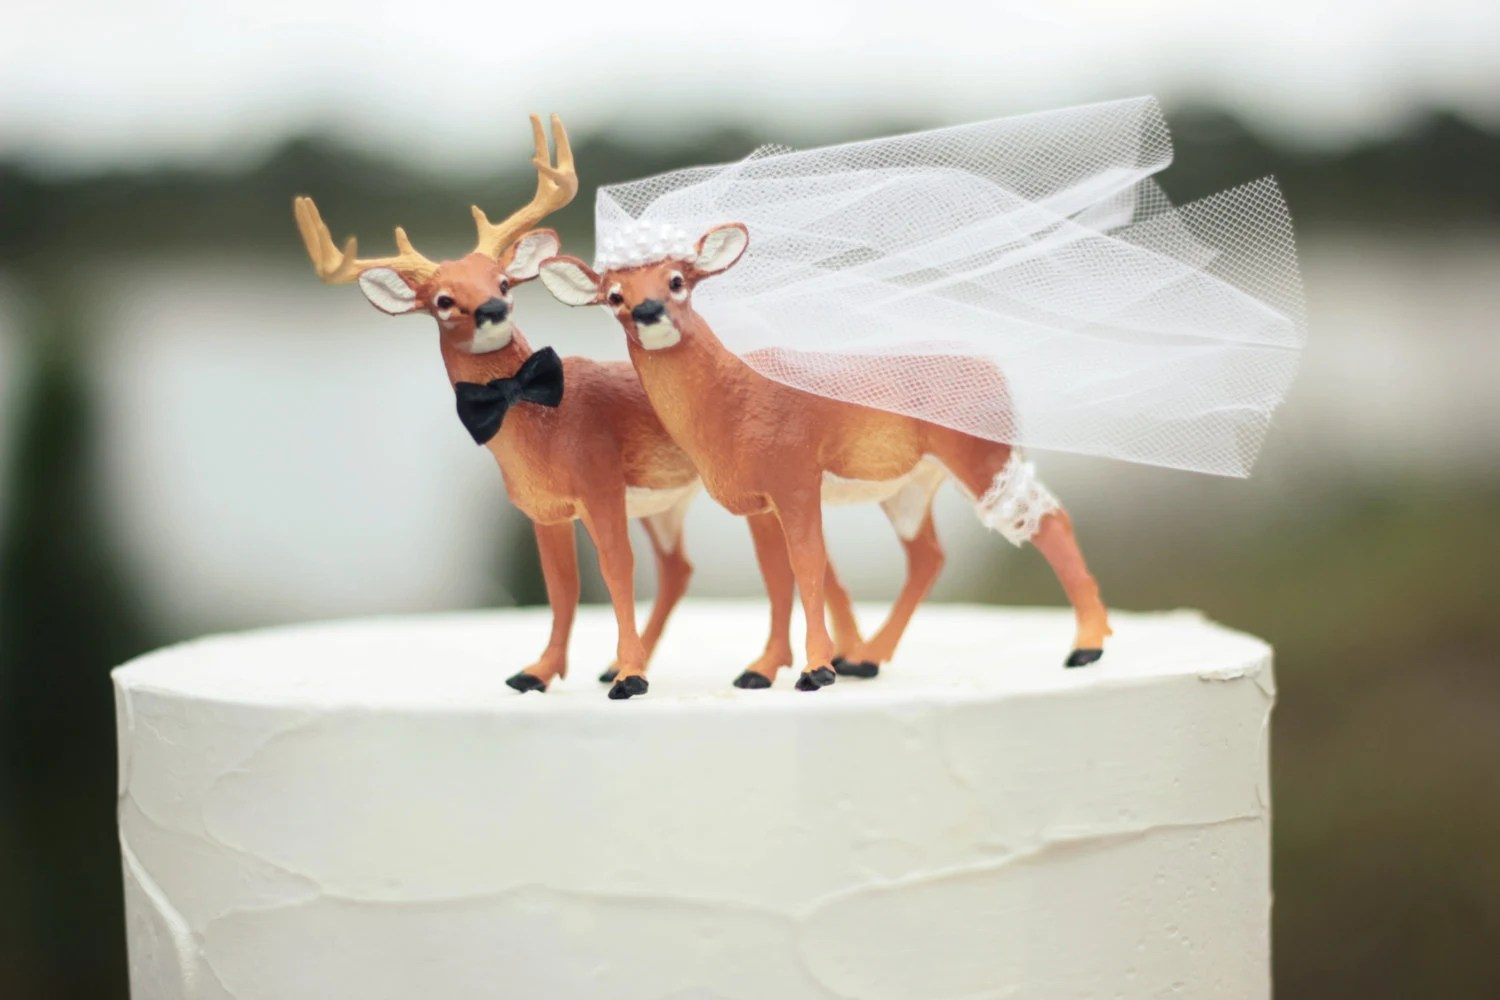 Deer wedding cake topper Hunting wedding cake topper Deer   Etsy image 0